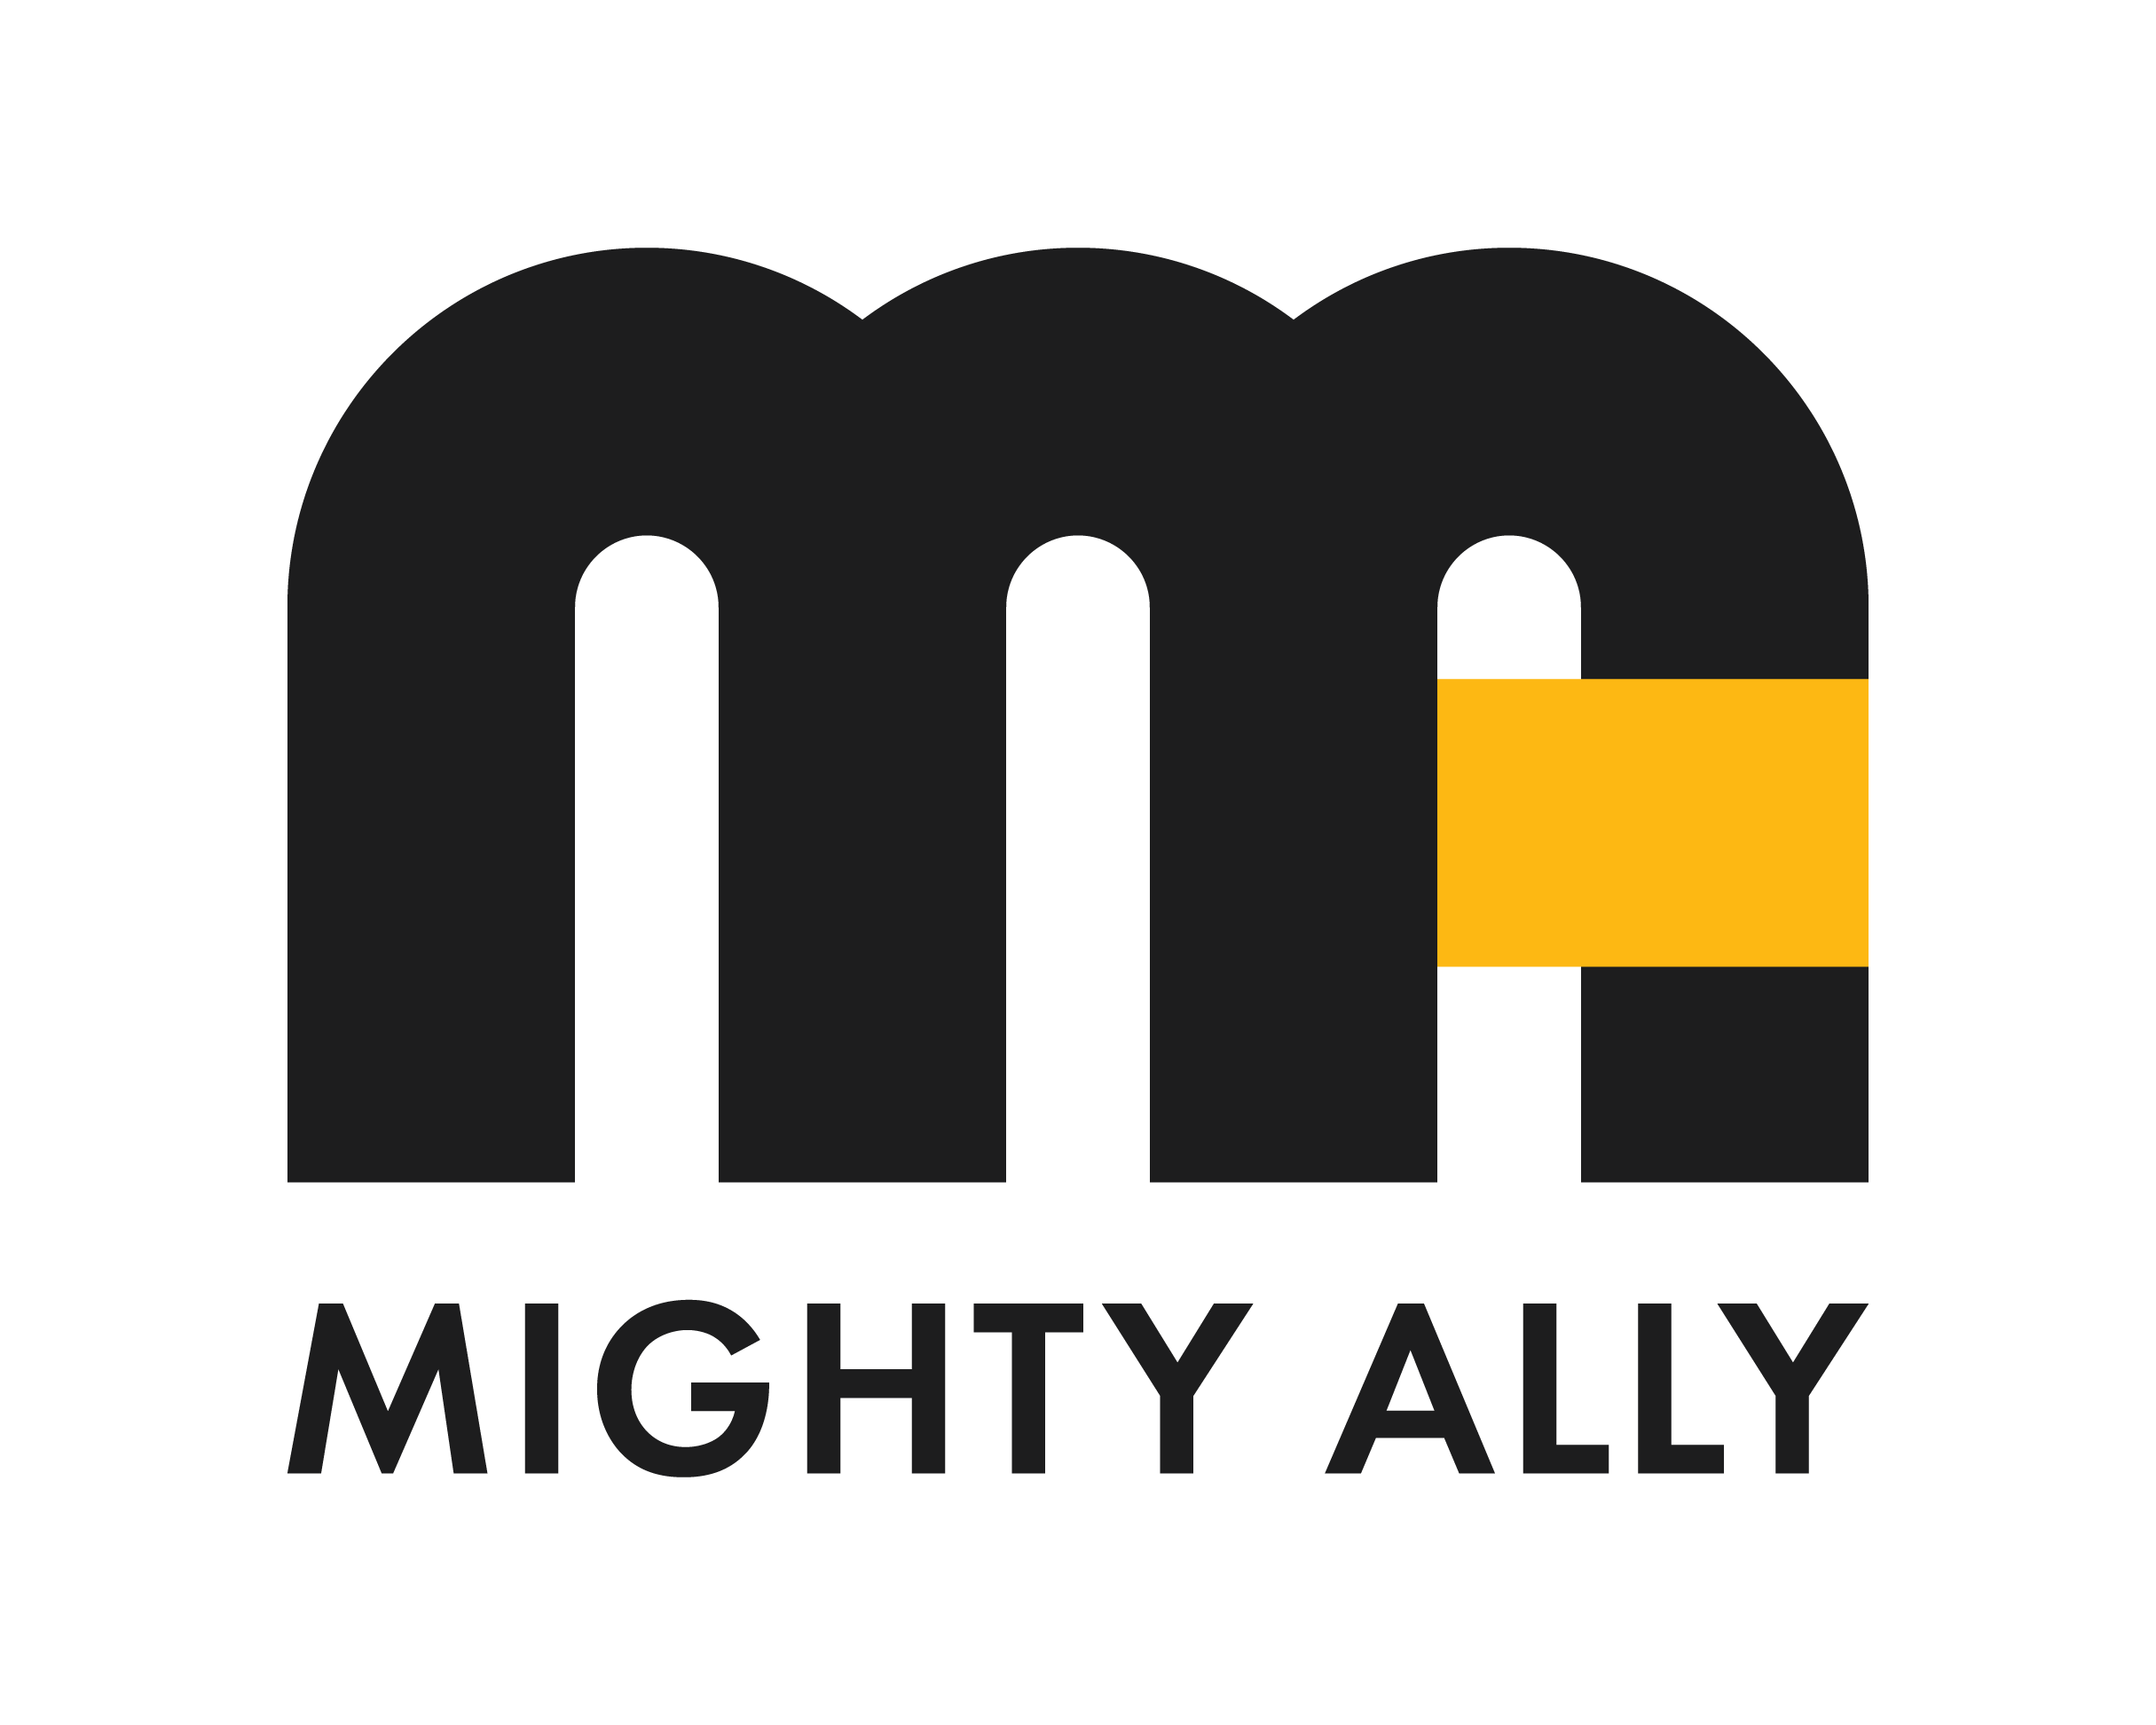 Logo for MIGHTY ALLY